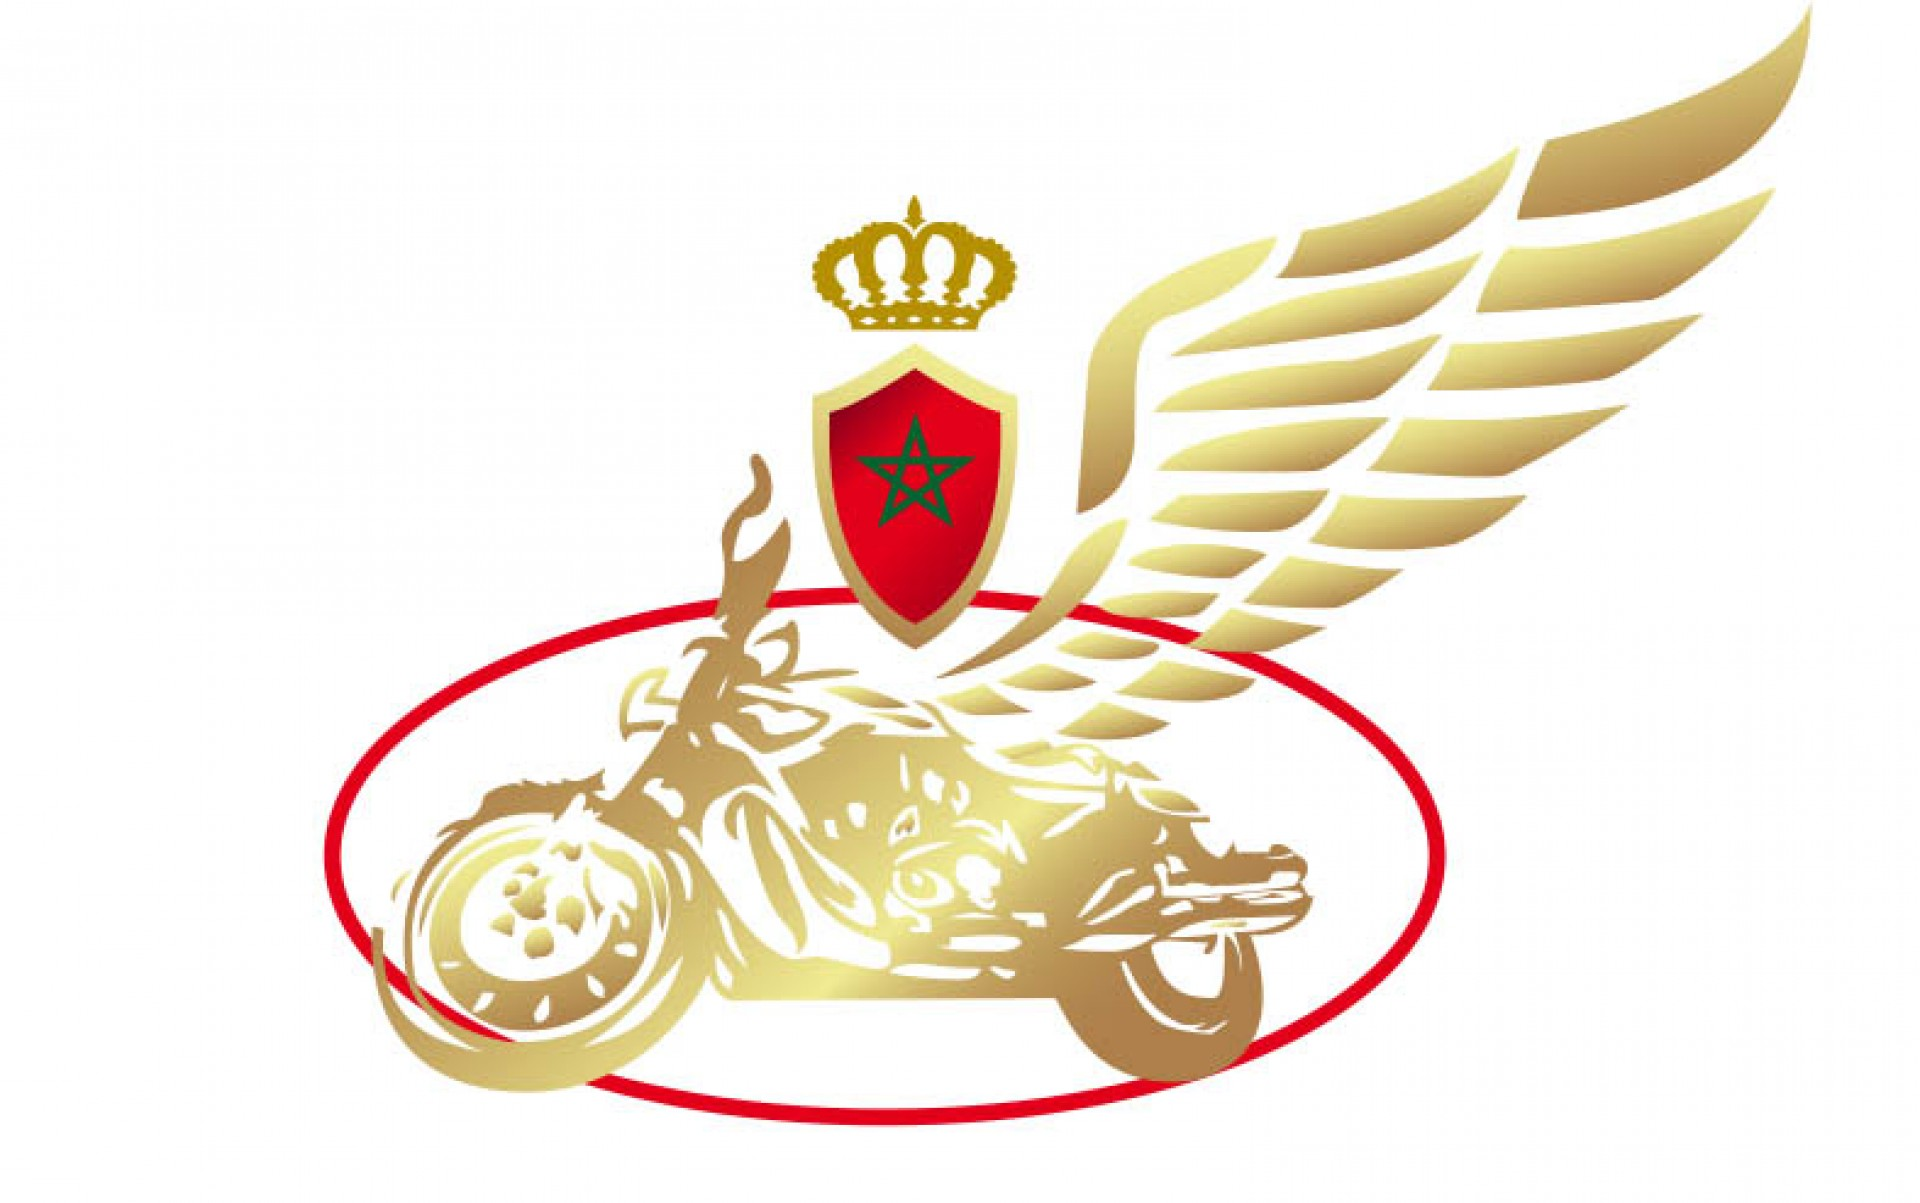 Club Royal Motos logo